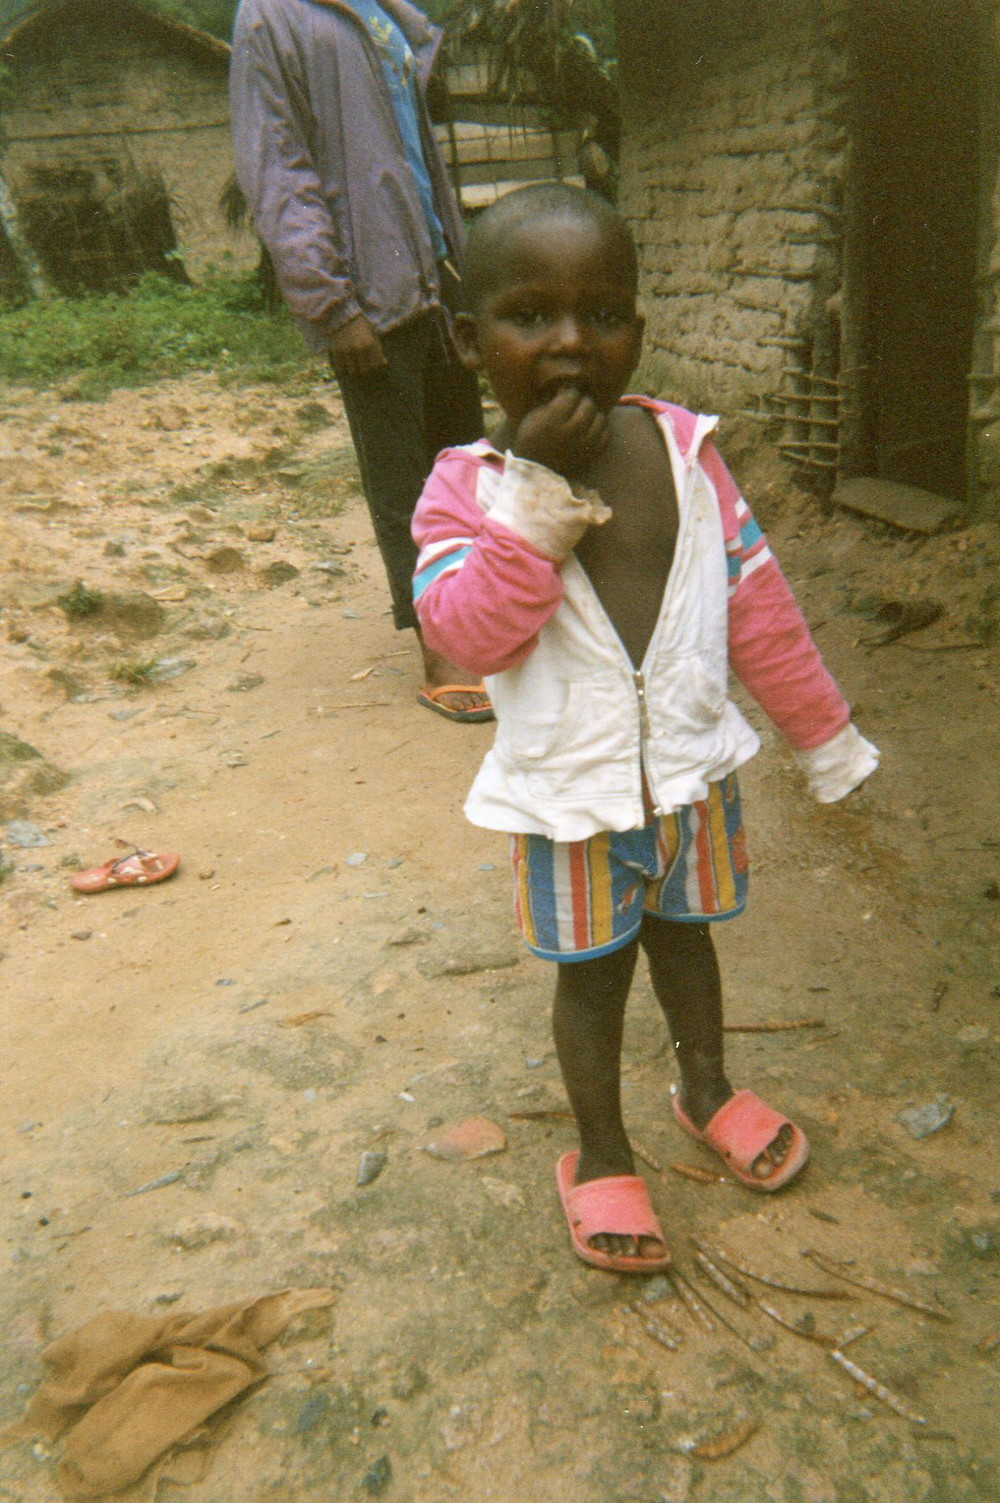 Seeing this child, it reminds me of my little brother who was killed by armed groups because I had integrated with the armed groups.